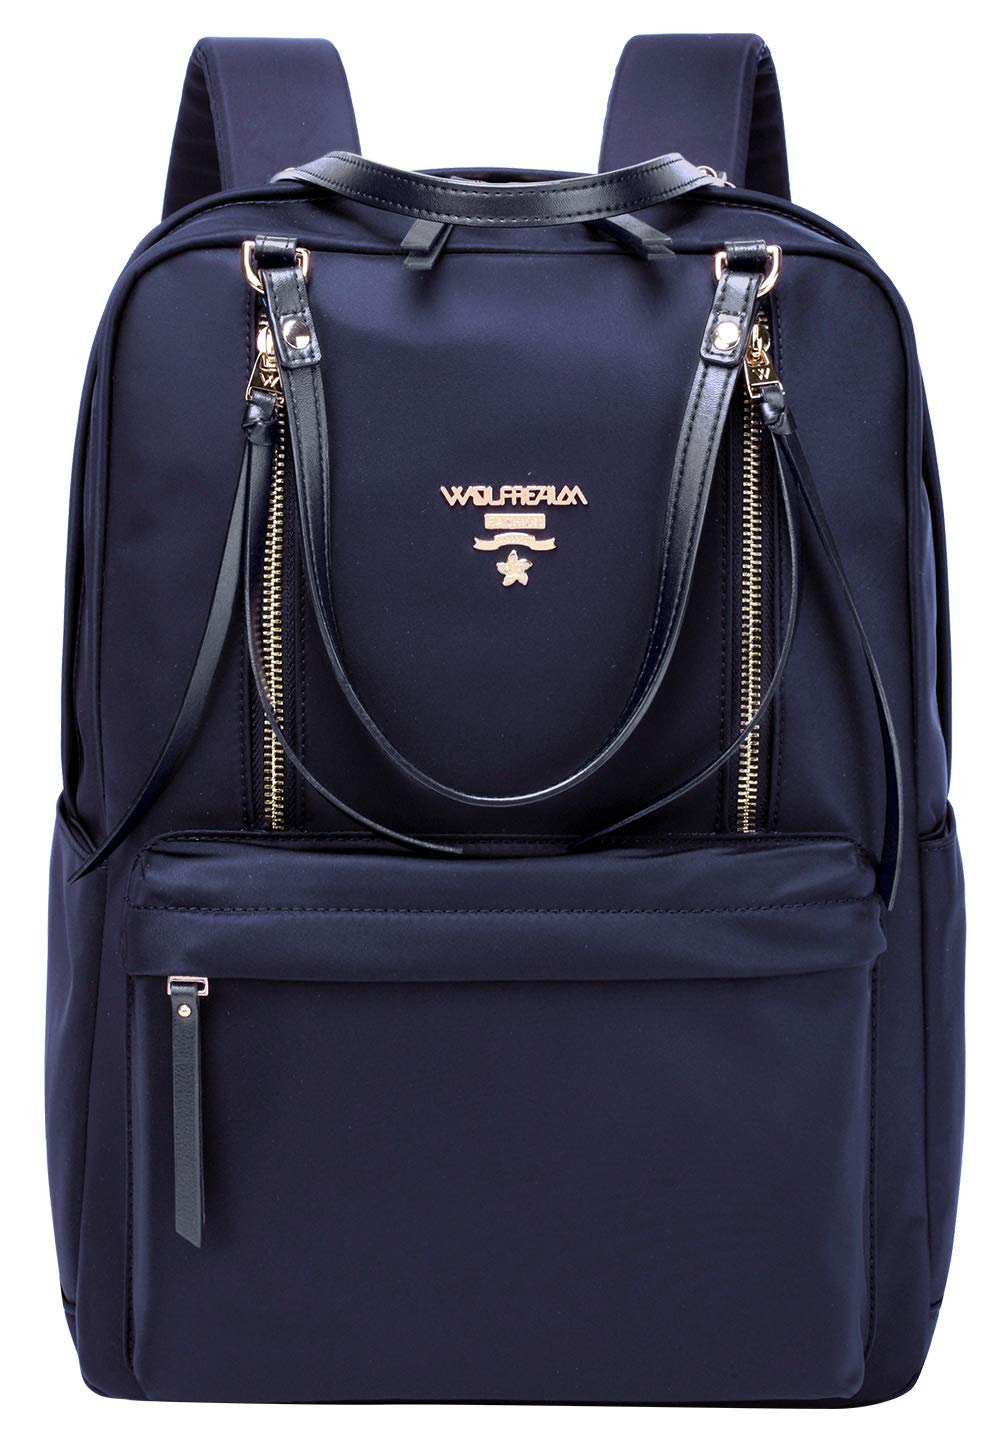 Wolfrealm Laptop Backpacks for Women Lightweight Business Backpack Purse Waterproof Travel Bags Fashion Ladies Notebook Bag,Blue 14.1 inches by Wolfrealm